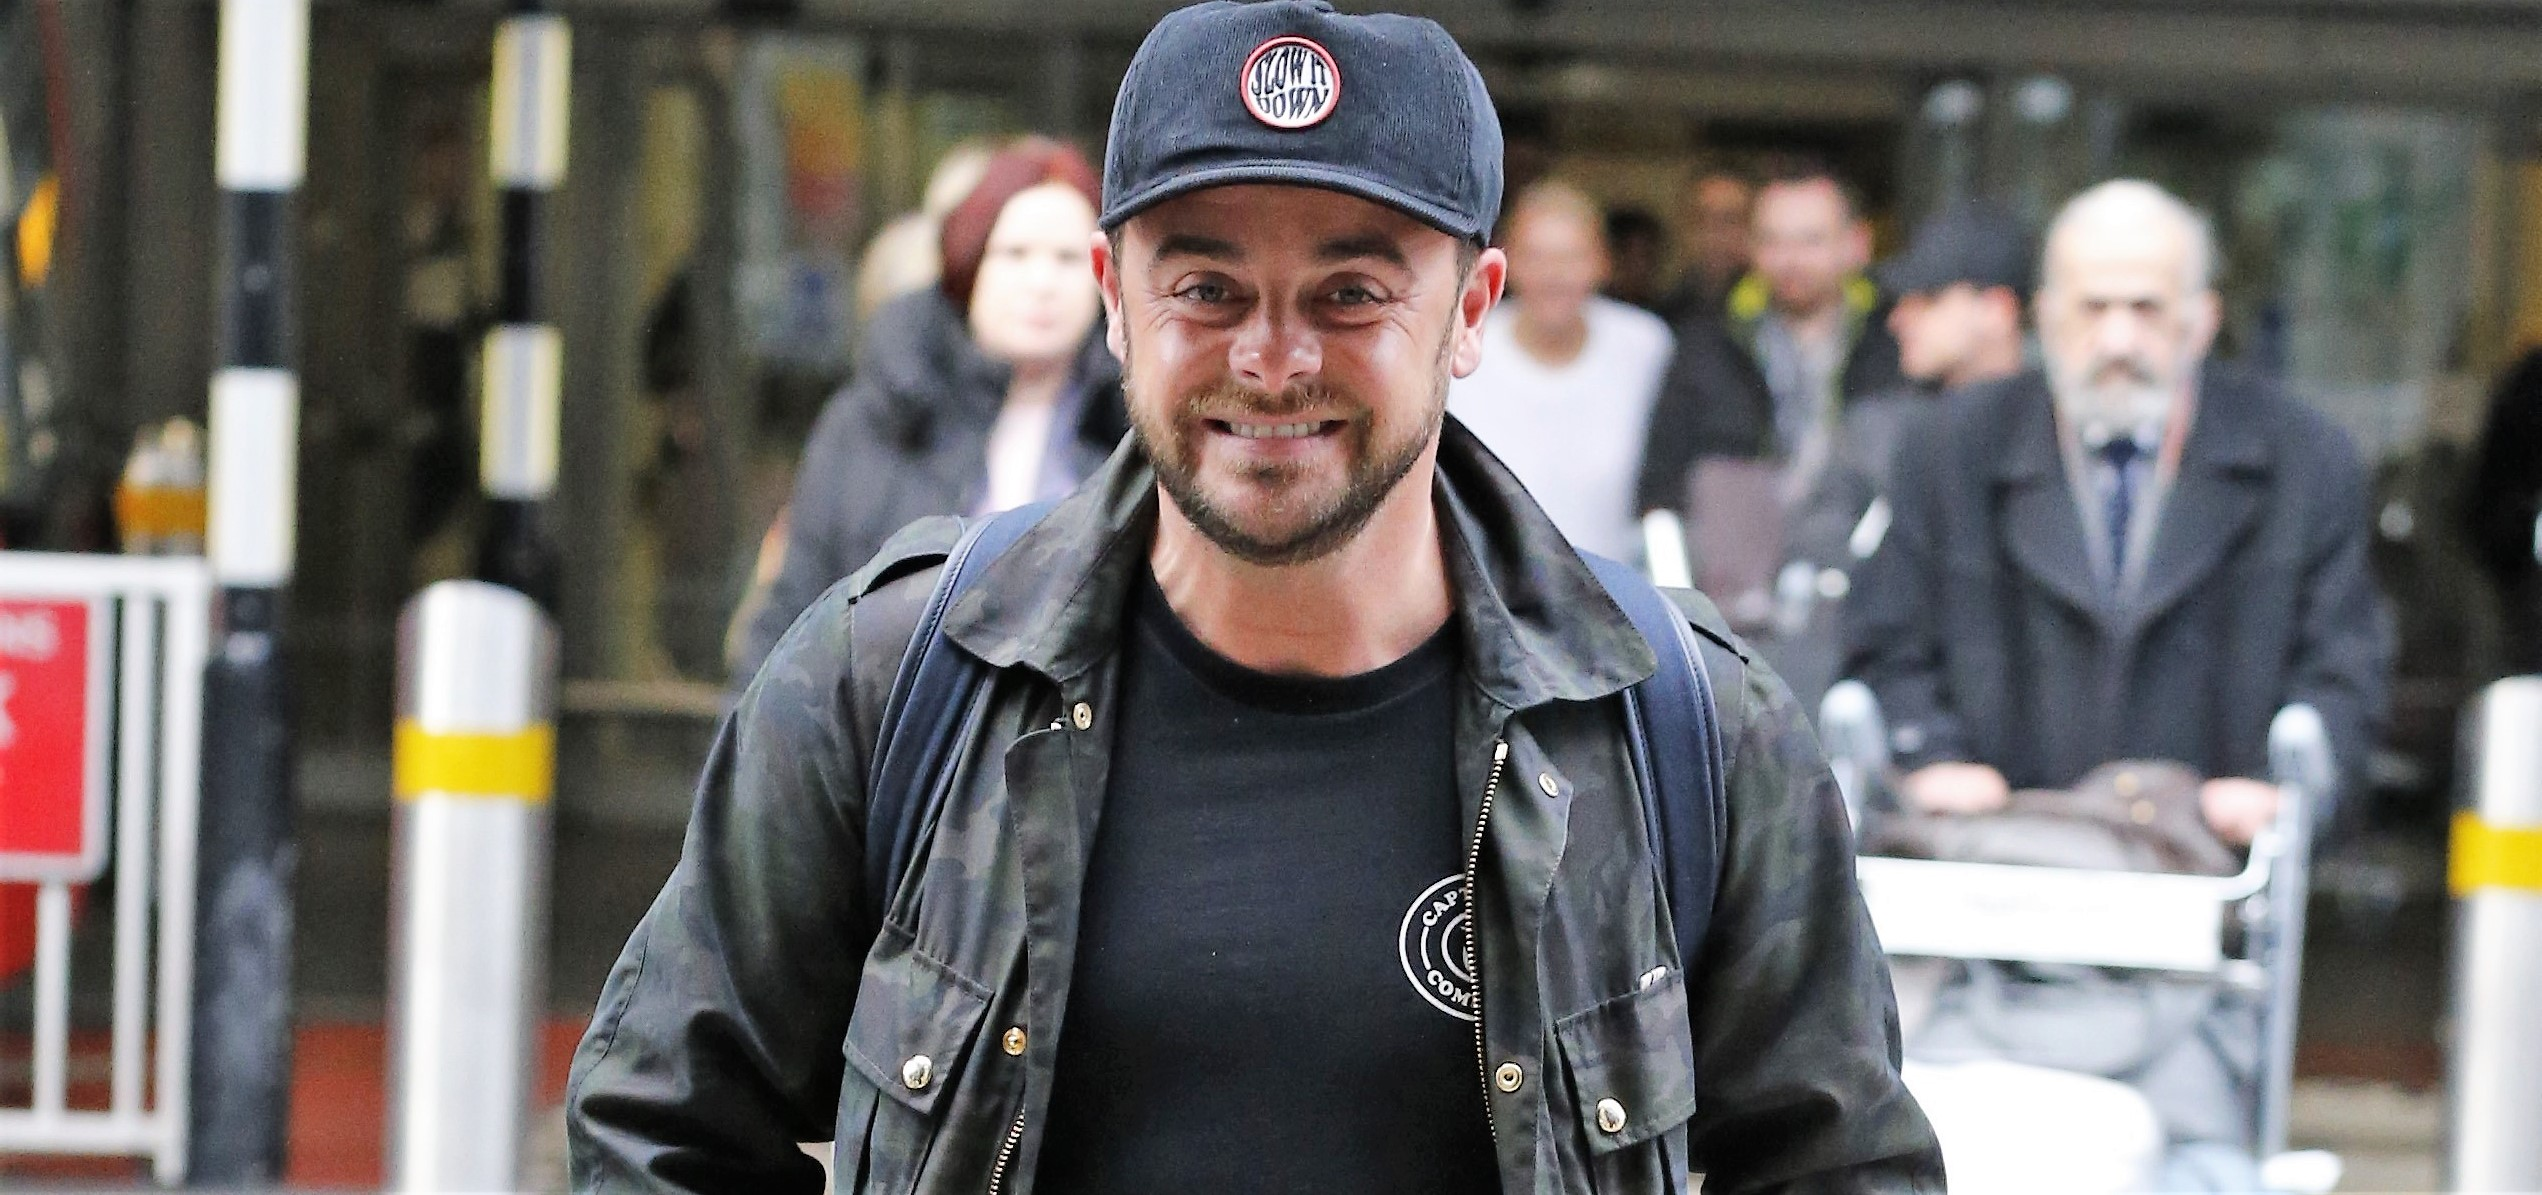 Ant McPartlin 'takes holiday' as I'm A Celeb launches